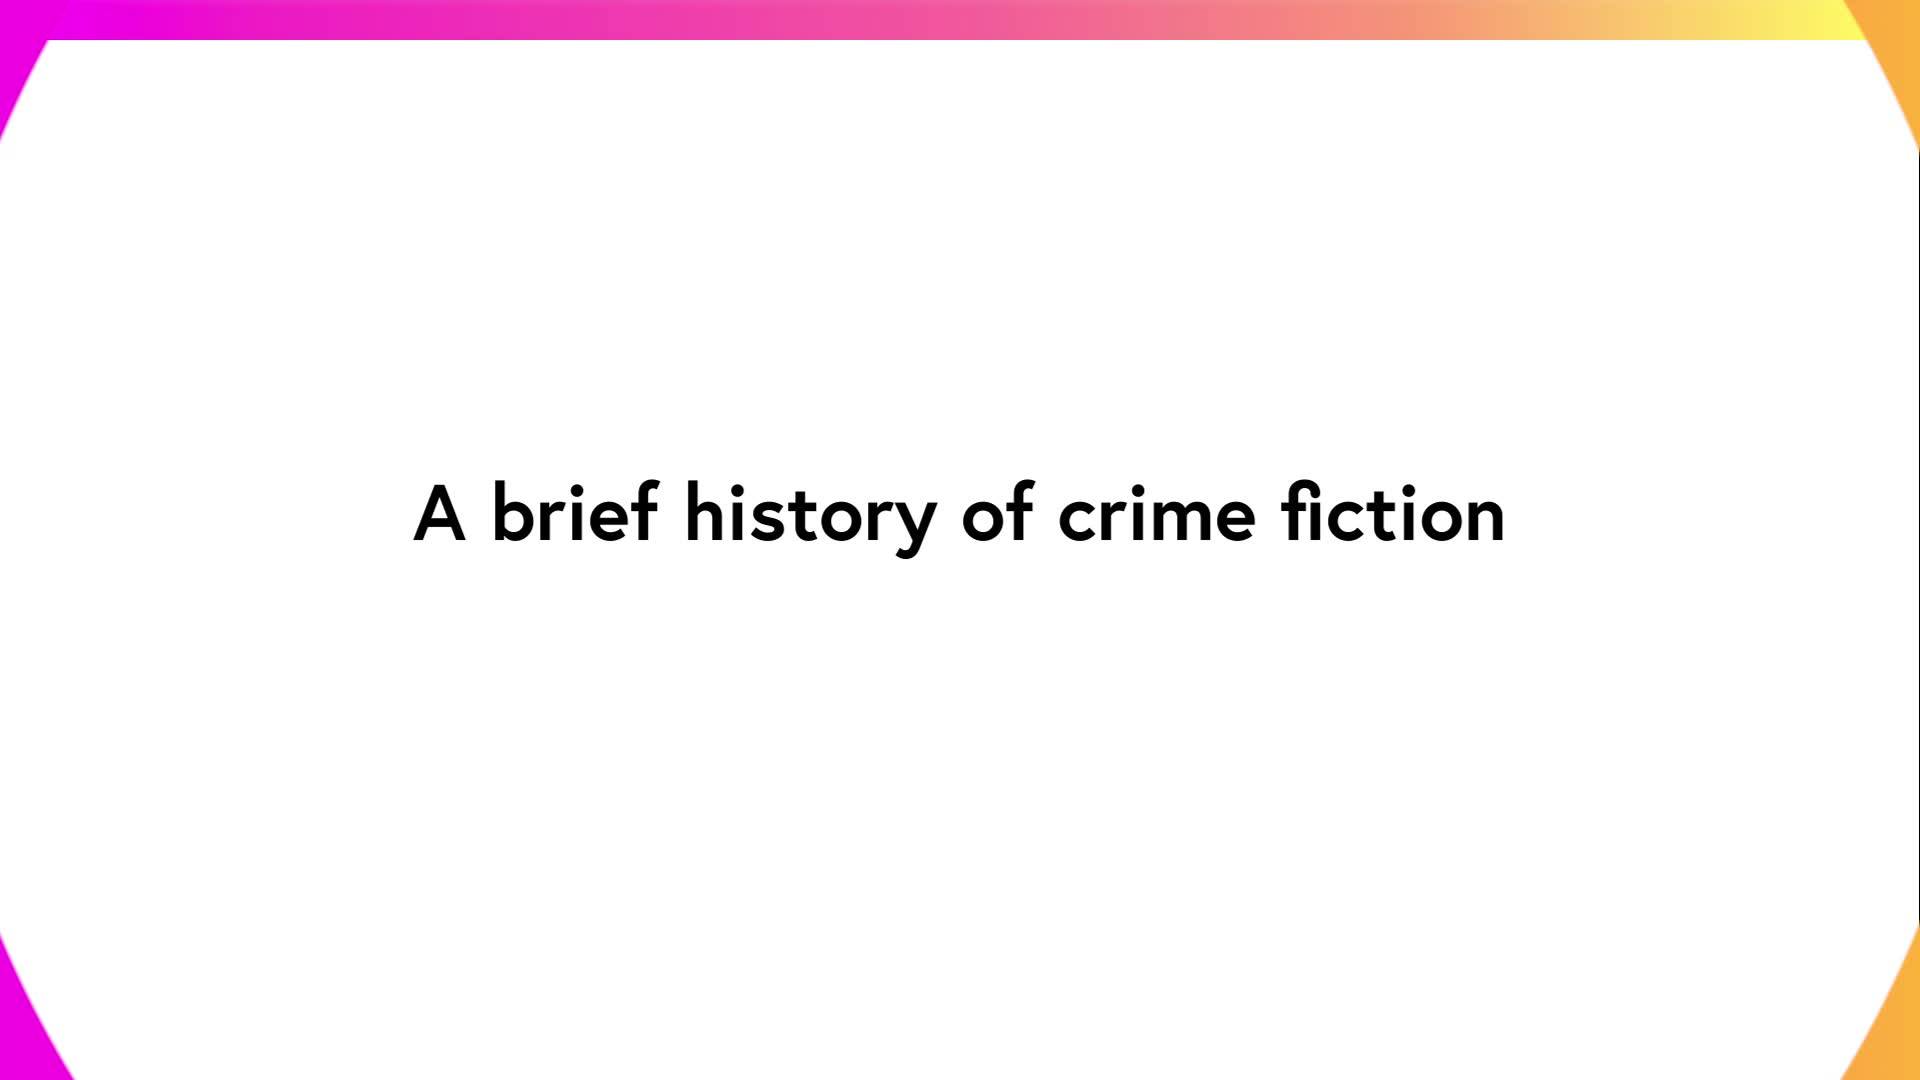 A brief history of crime fiction